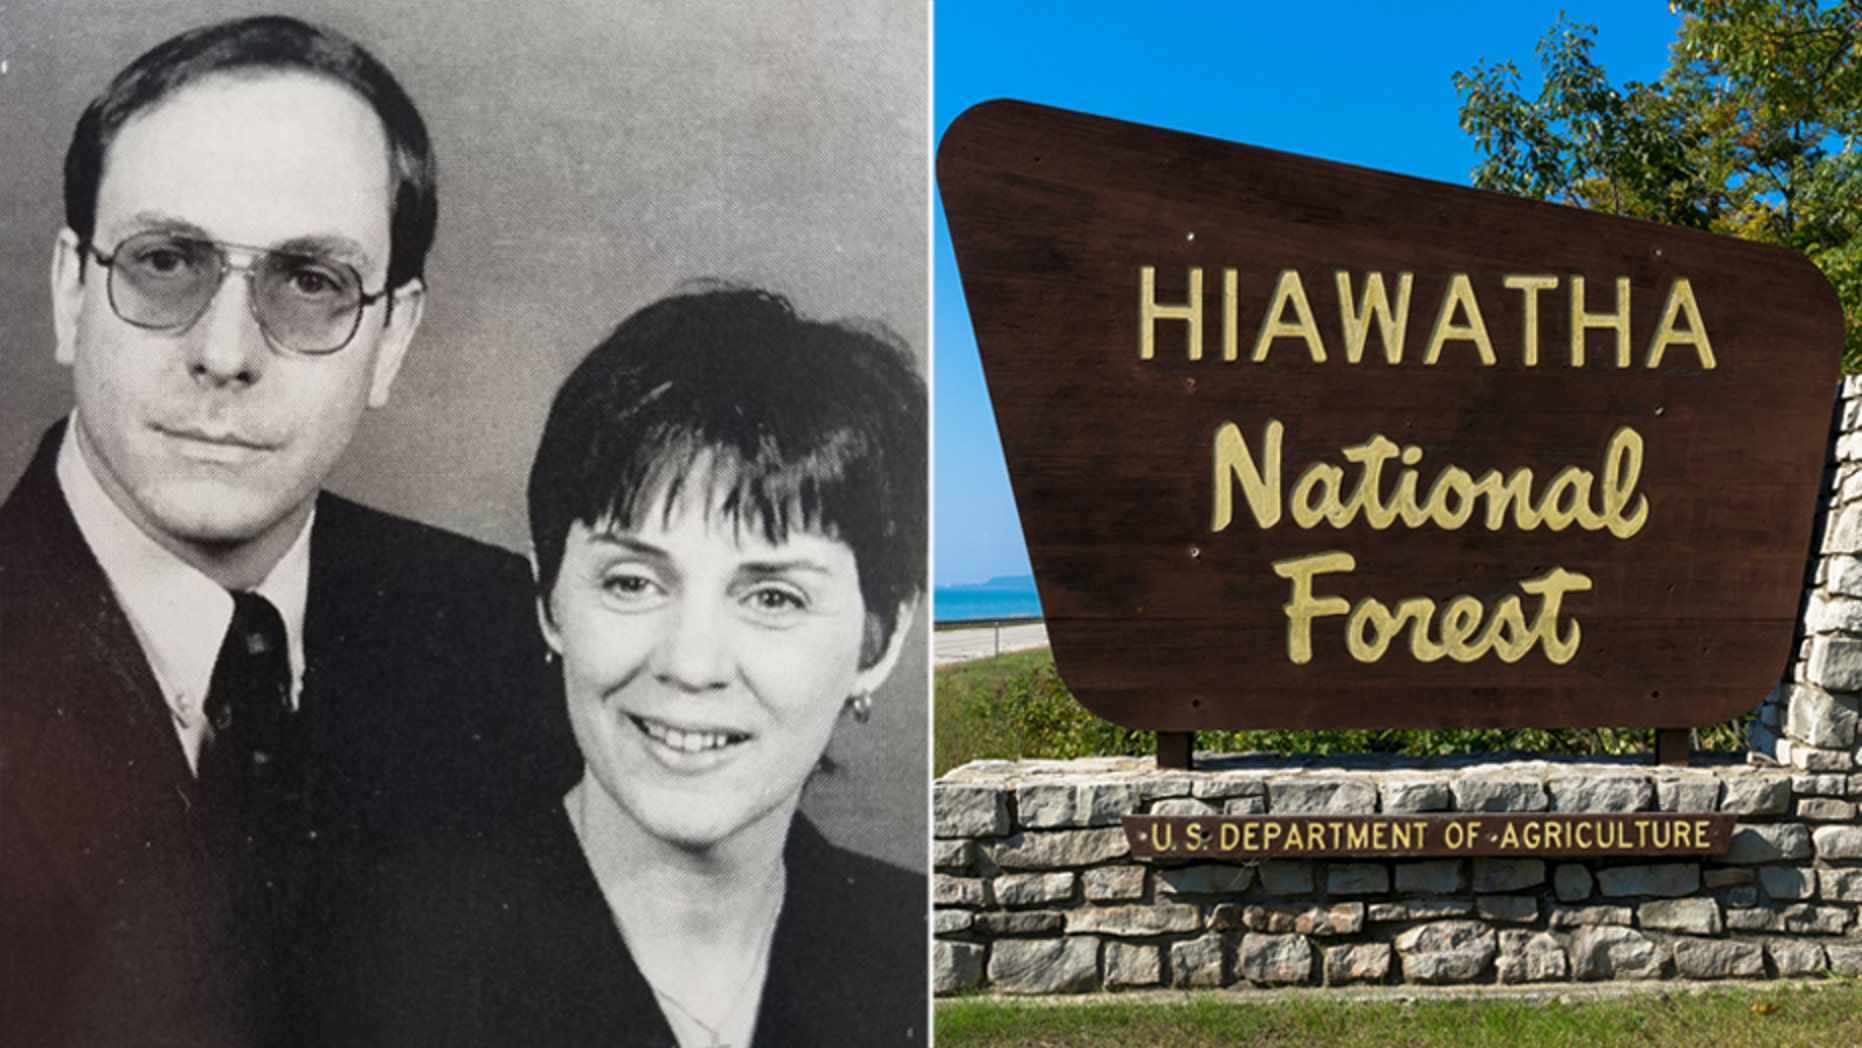 Mark and Janet Davies were in the small plane at the time of its disappearance in September 1997. Wreckage of a small plane with the same tail number as the aircraft the Davies owned was discovered Wednesday in the Hiawatha National Forest in St. Ignace, Mich.